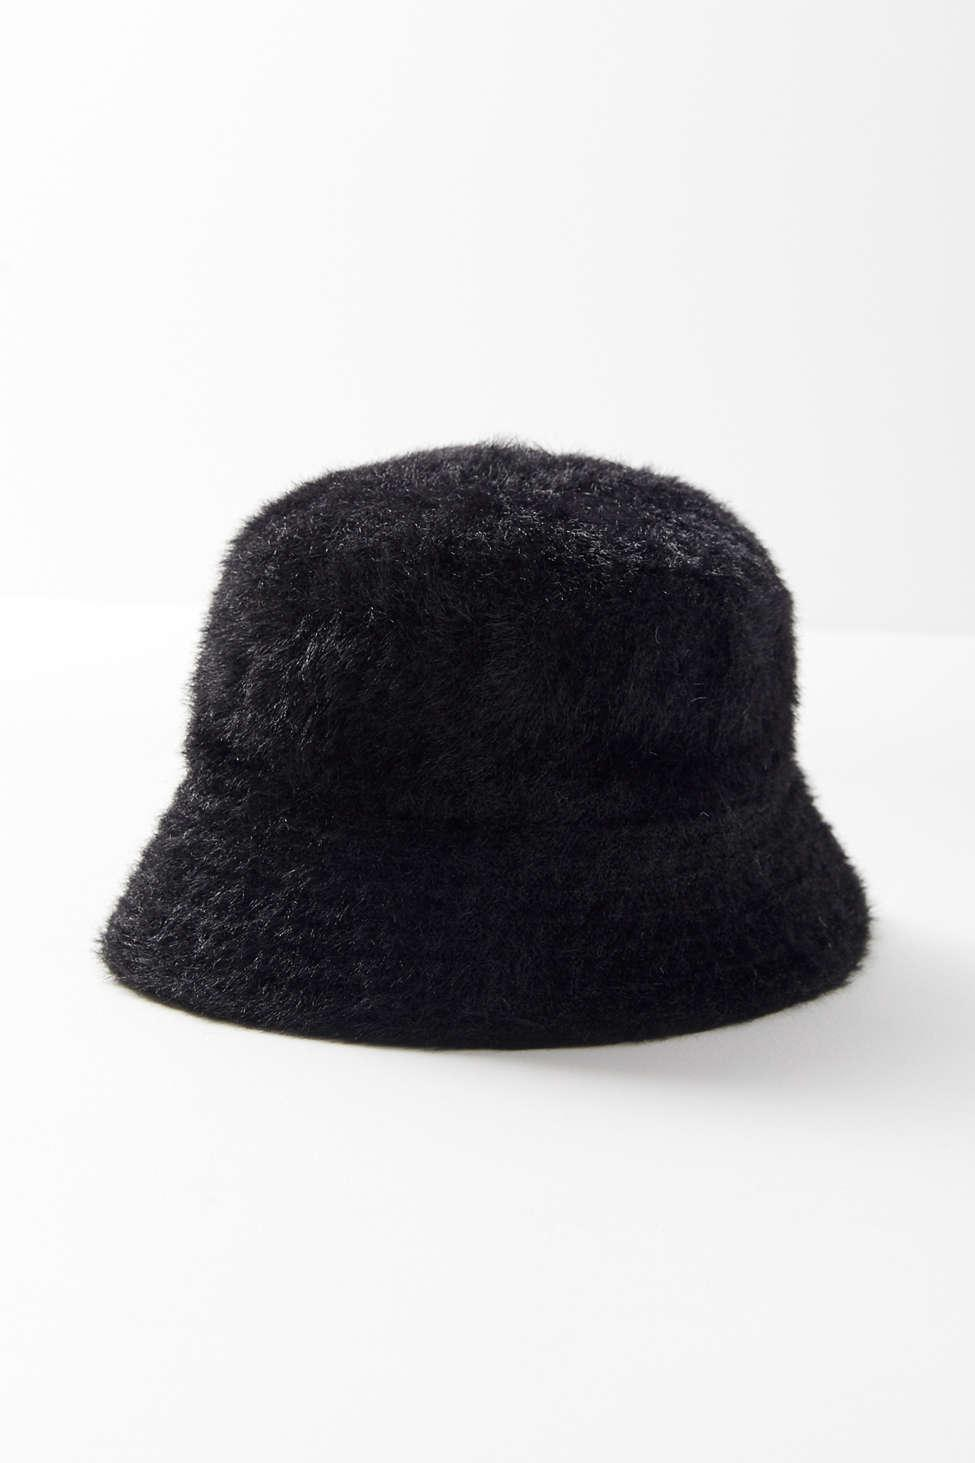 Urban Outfitters - Black Gia Bucket Hat - Lyst. View fullscreen 01bbf56afdc3